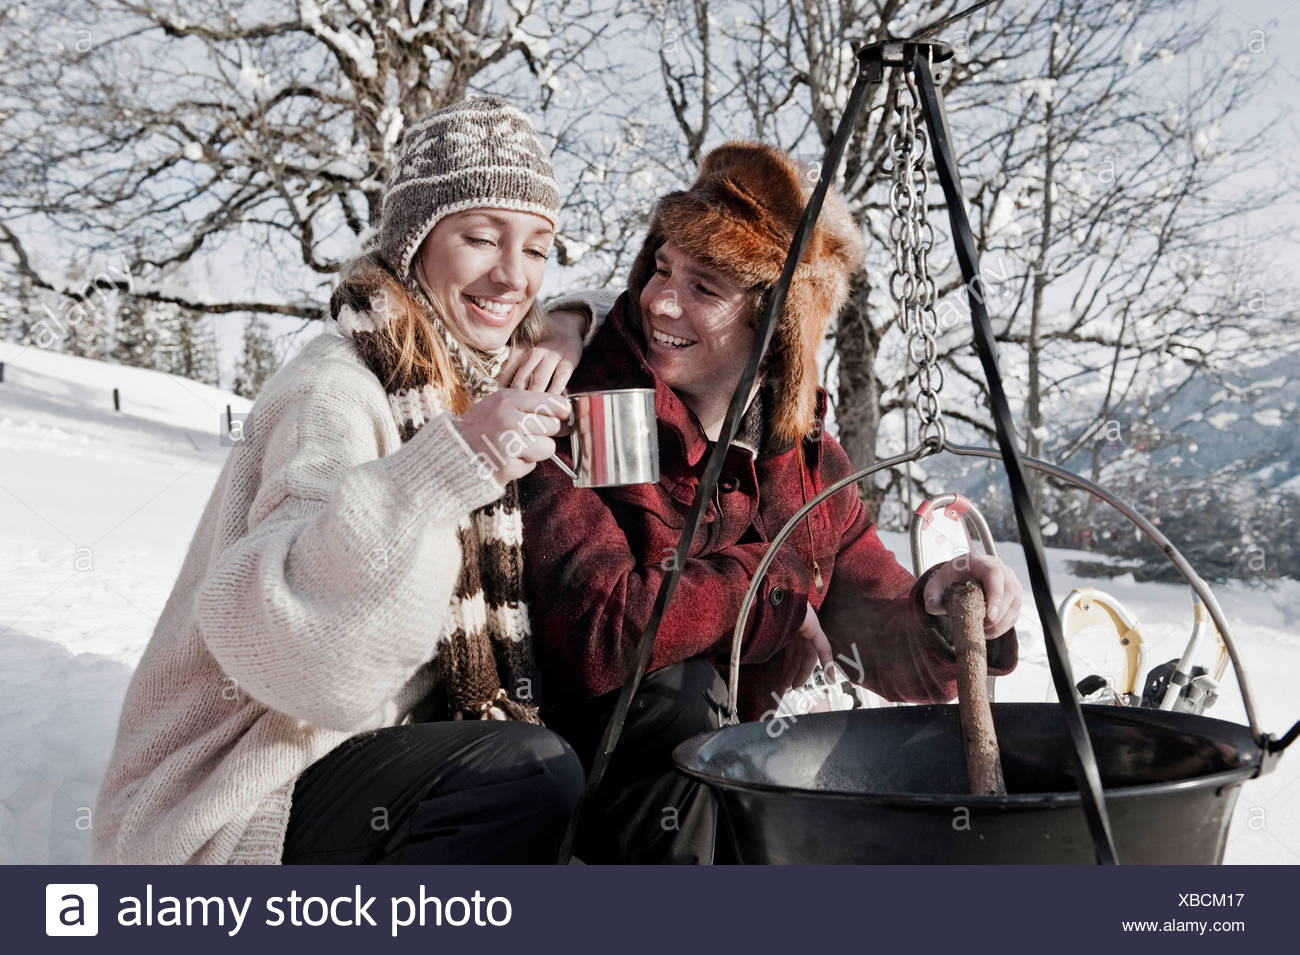 Austria, Salzburger Land, Couple cooking on campfire - Stock Image